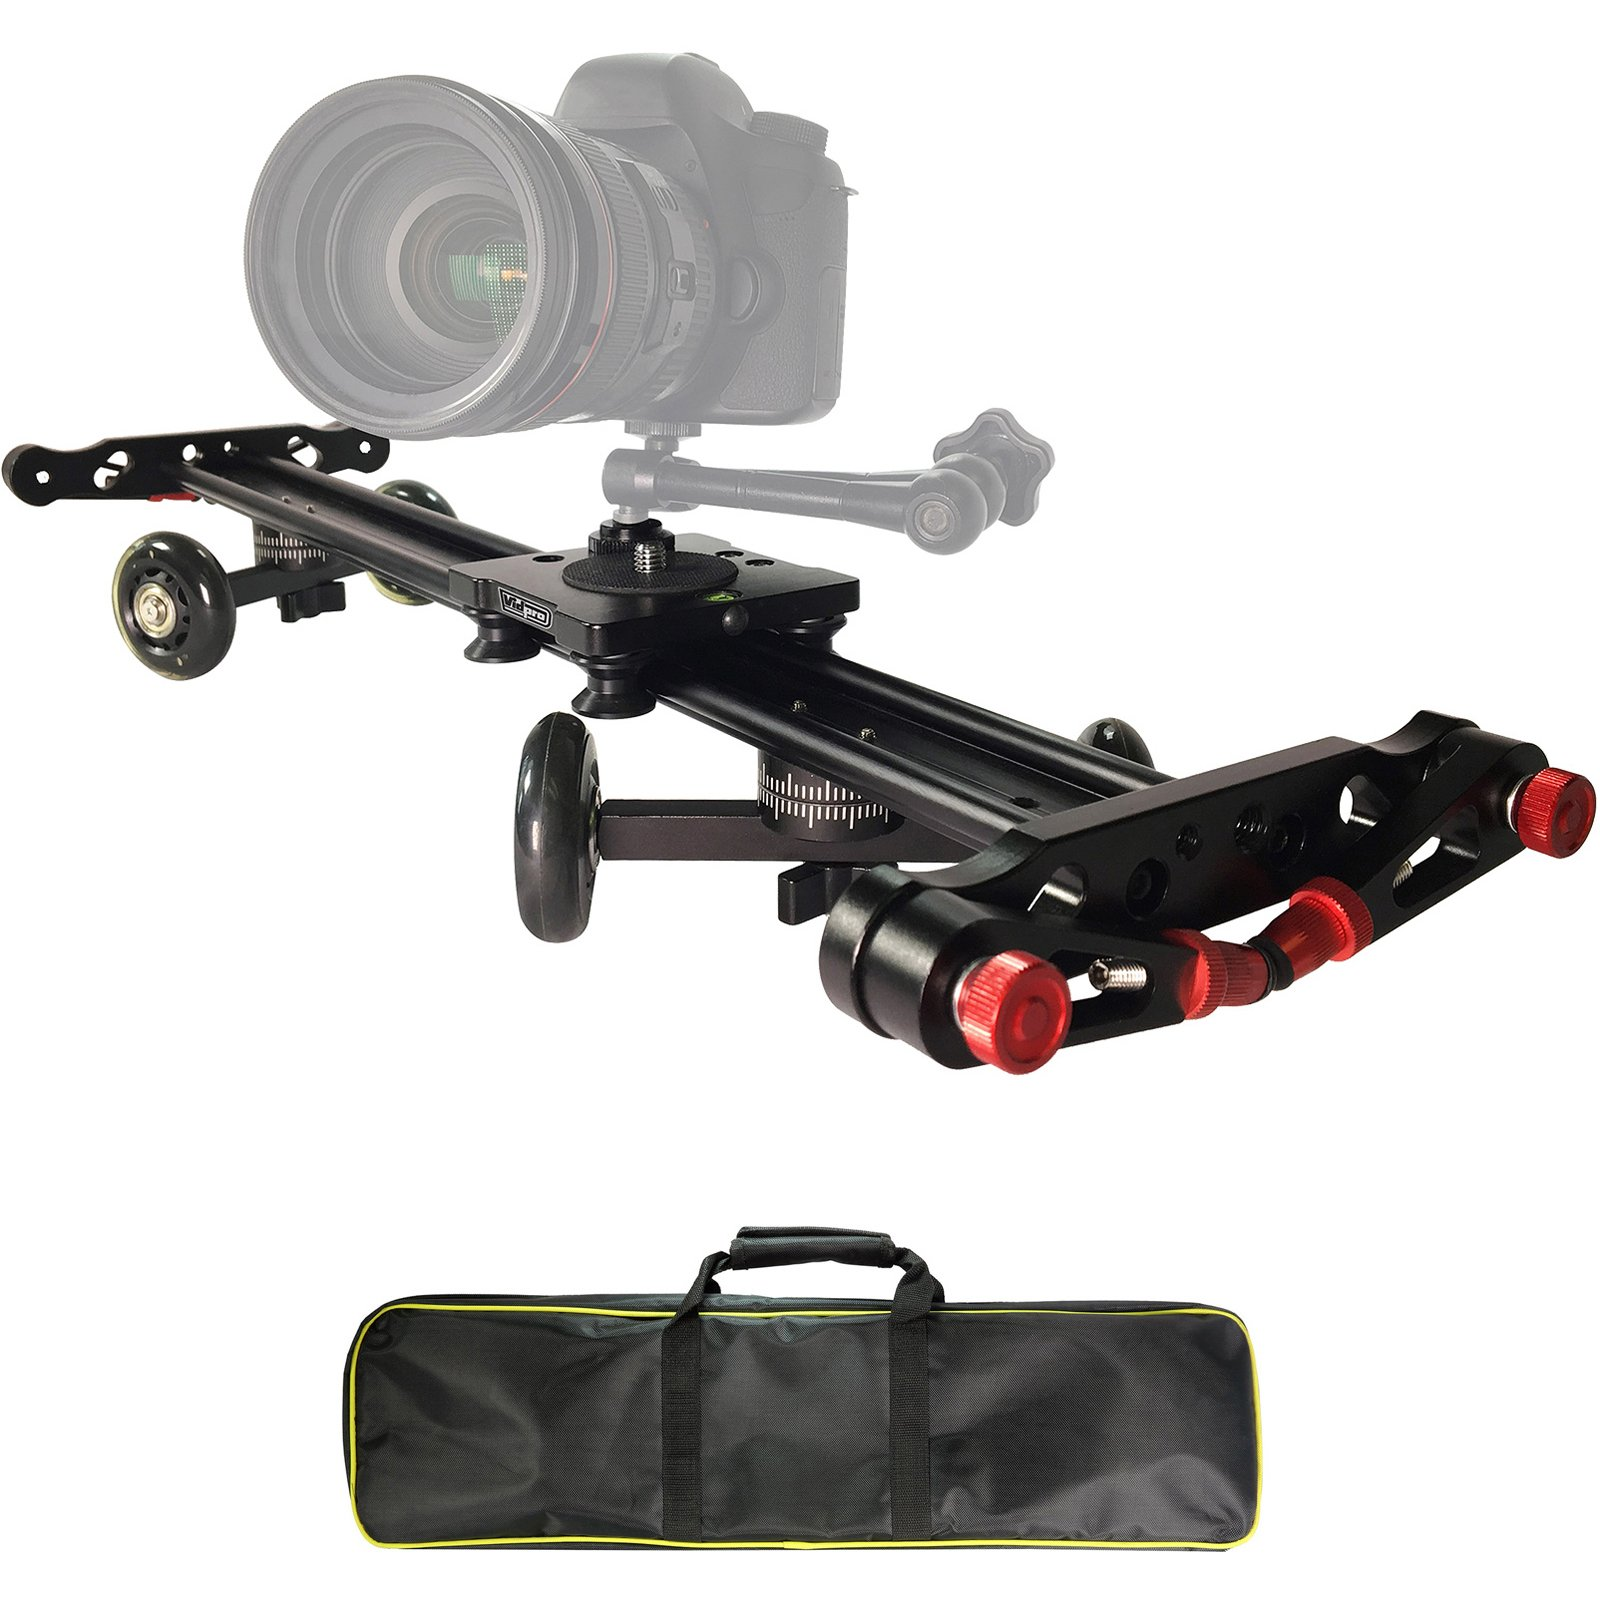 Vidpro SK-24 Professional 24'' Track Slider and Skater Dolly